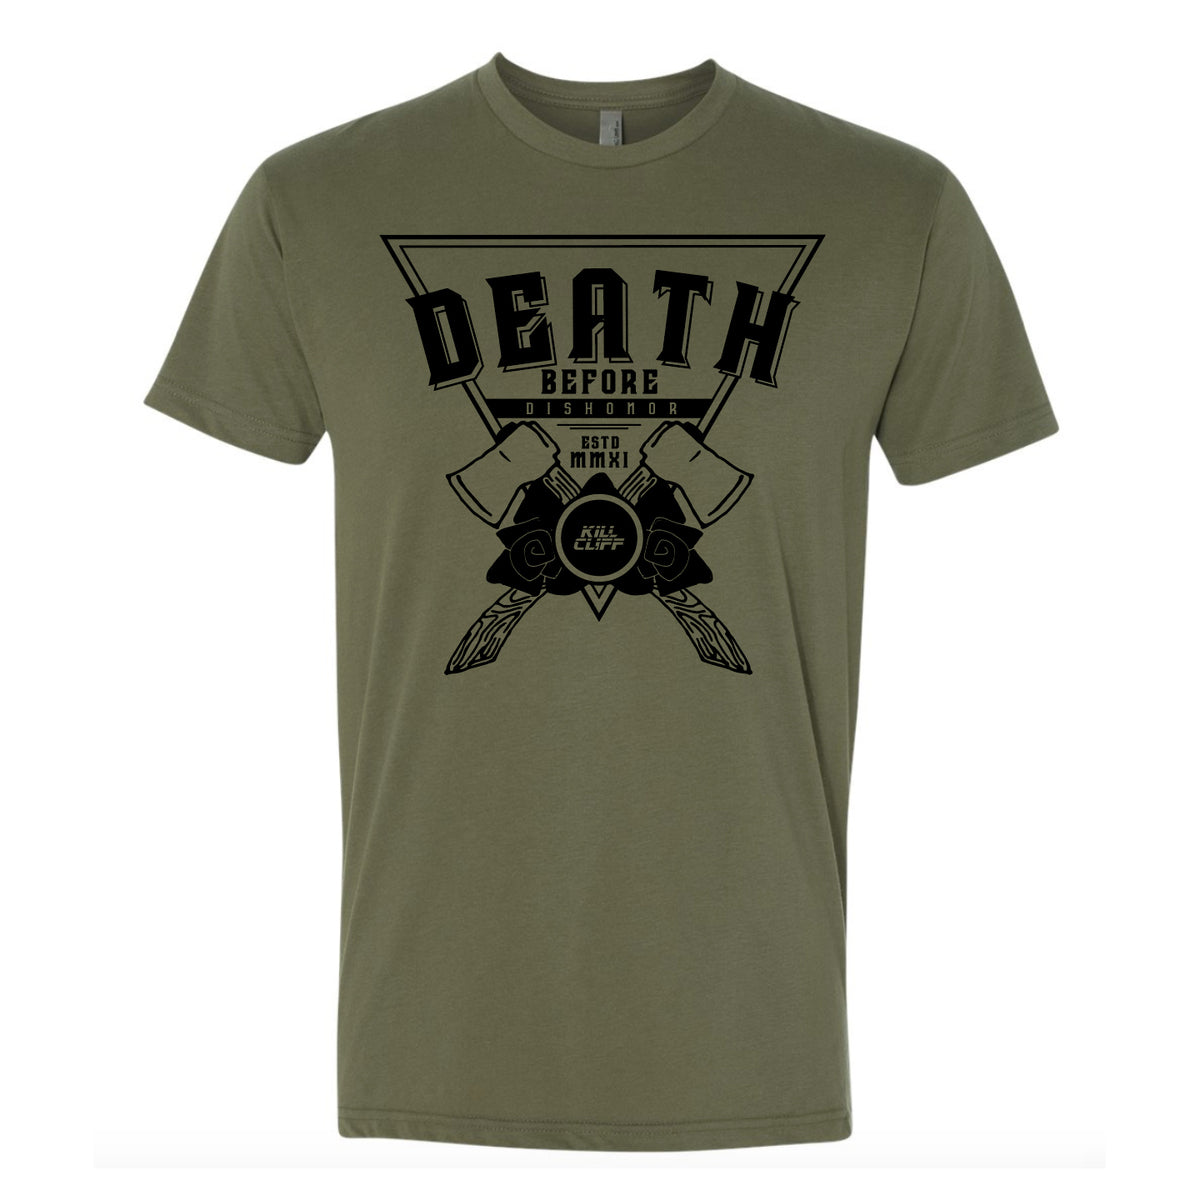 Mens Death Before Dishonor Tee